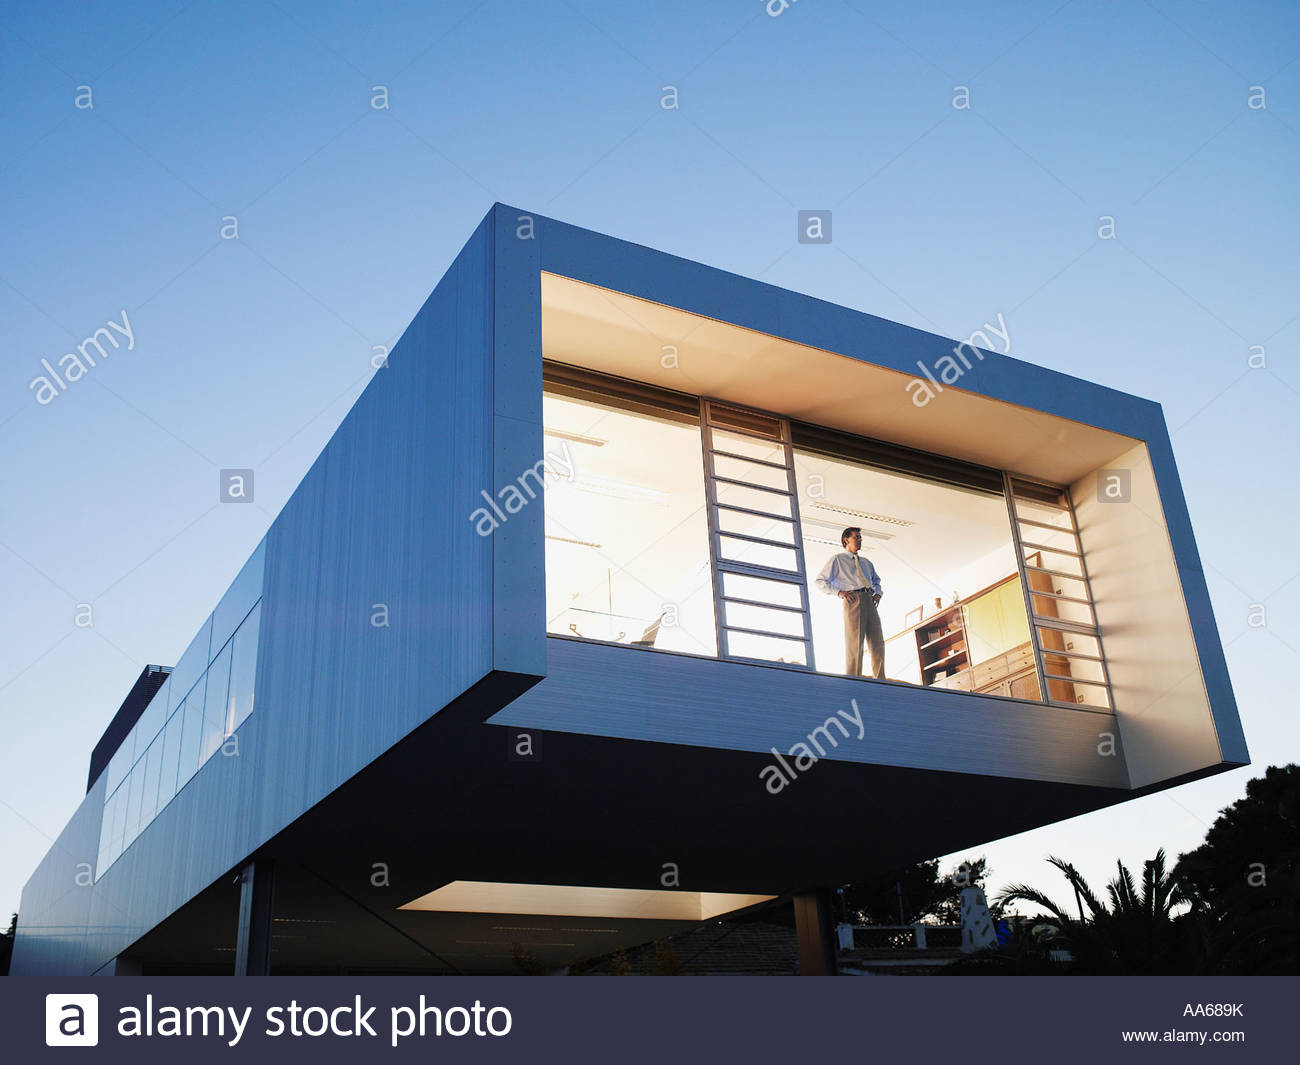 Exterior of a modern office building with man looking out window - Stock Image